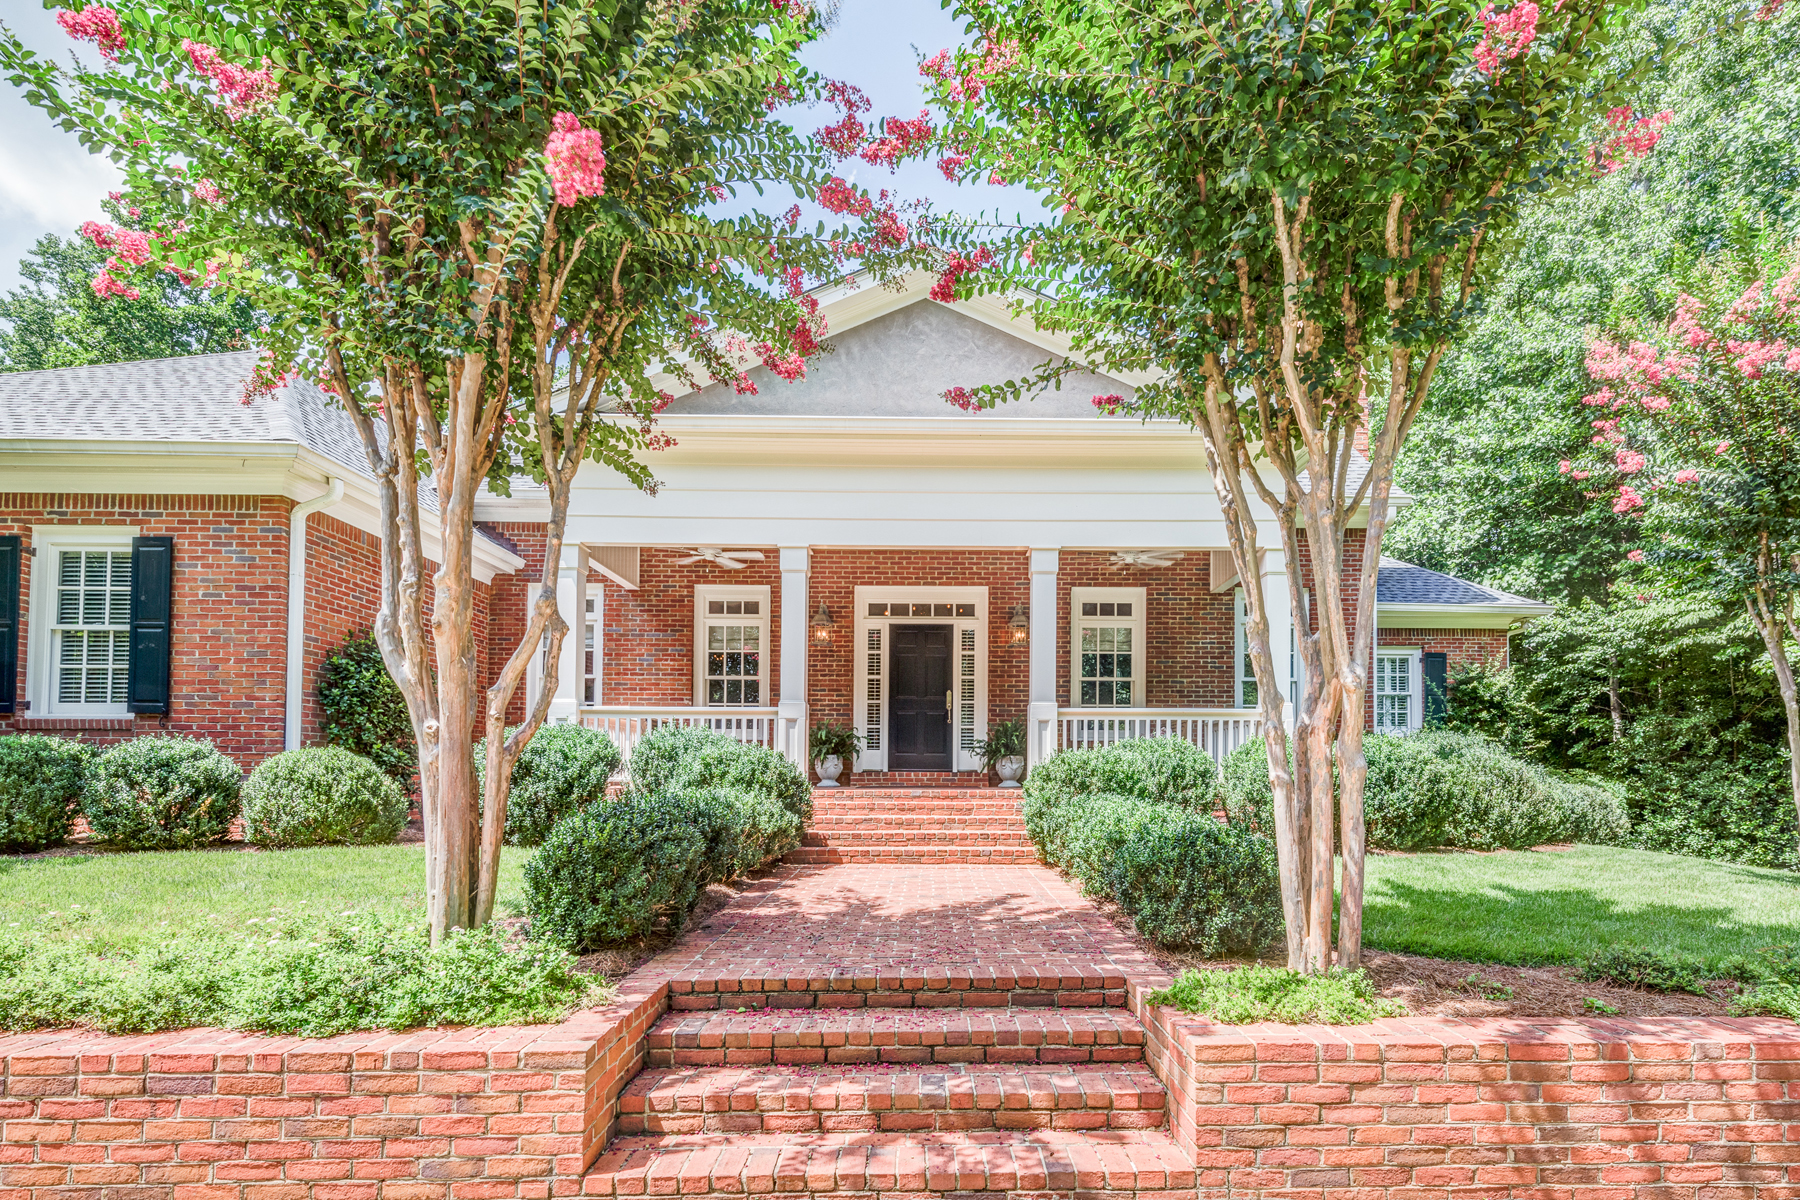 独户住宅 为 销售 在 Custom Home In Sought After Historic Marietta Community 500 Saint James Place NW 玛丽埃塔, 乔治亚州, 30064 美国